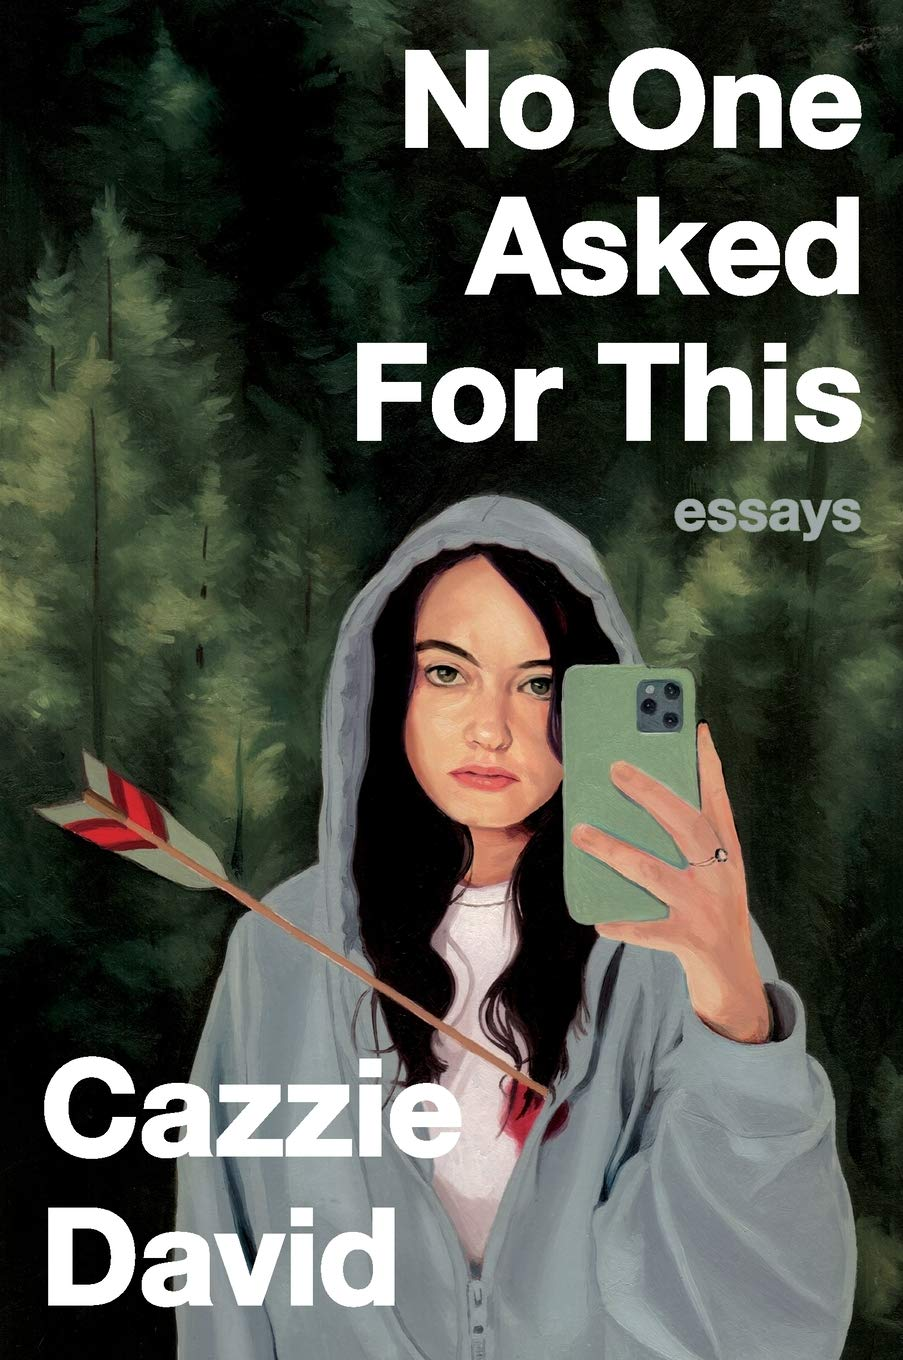 The cover of Cazzie David's No One Asked for This.